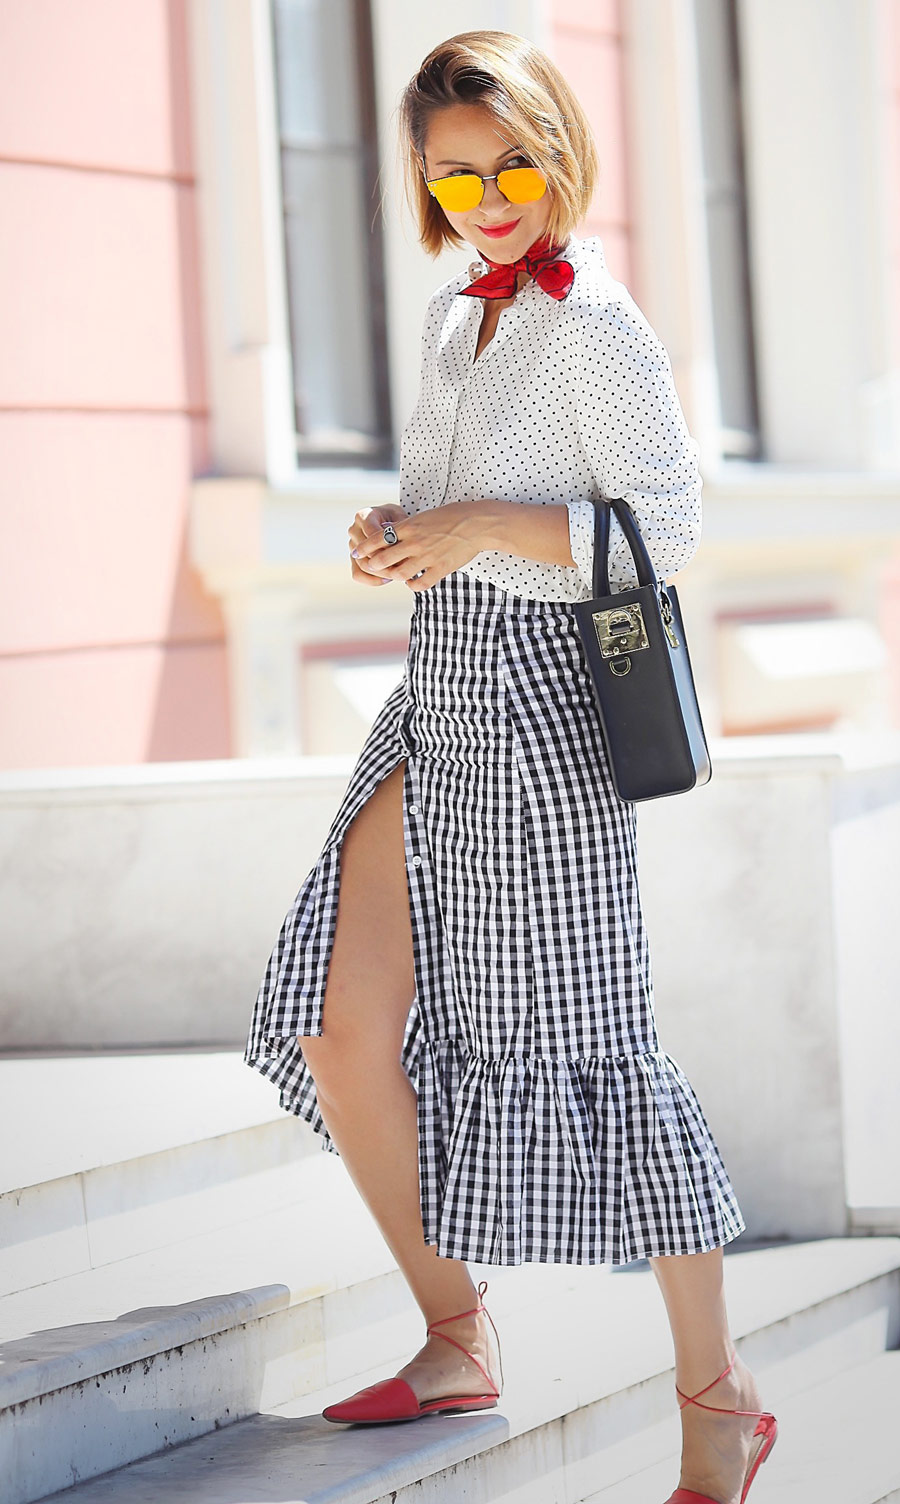 ruffle_skirt_outfit_ideas-mixing_prints_summer_outfits